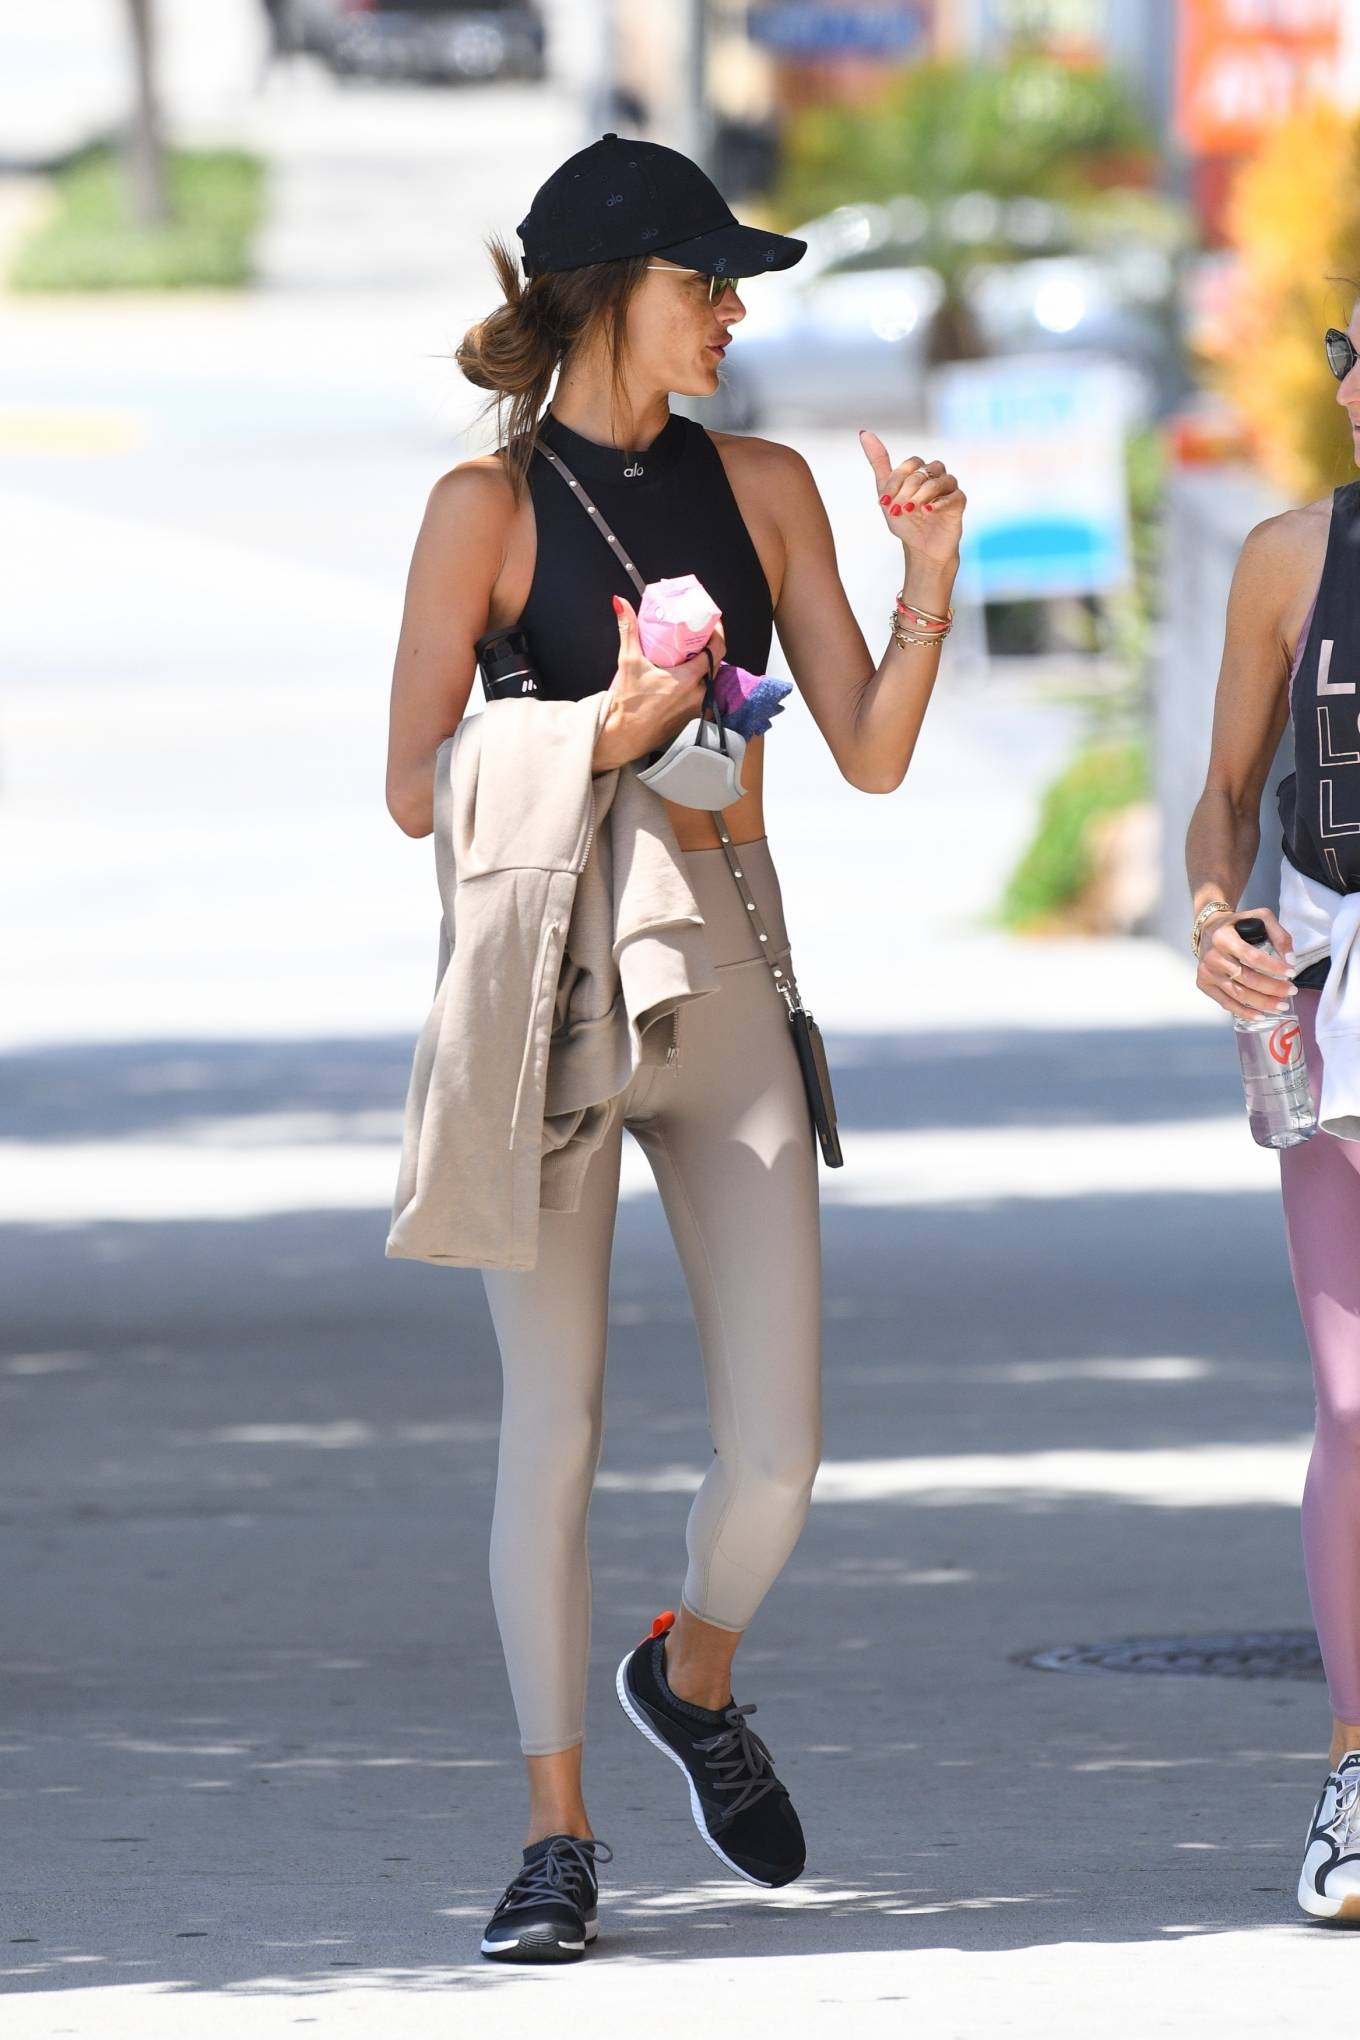 Alessandra Ambrosio rocking round black lace-up sneakers with flat heel